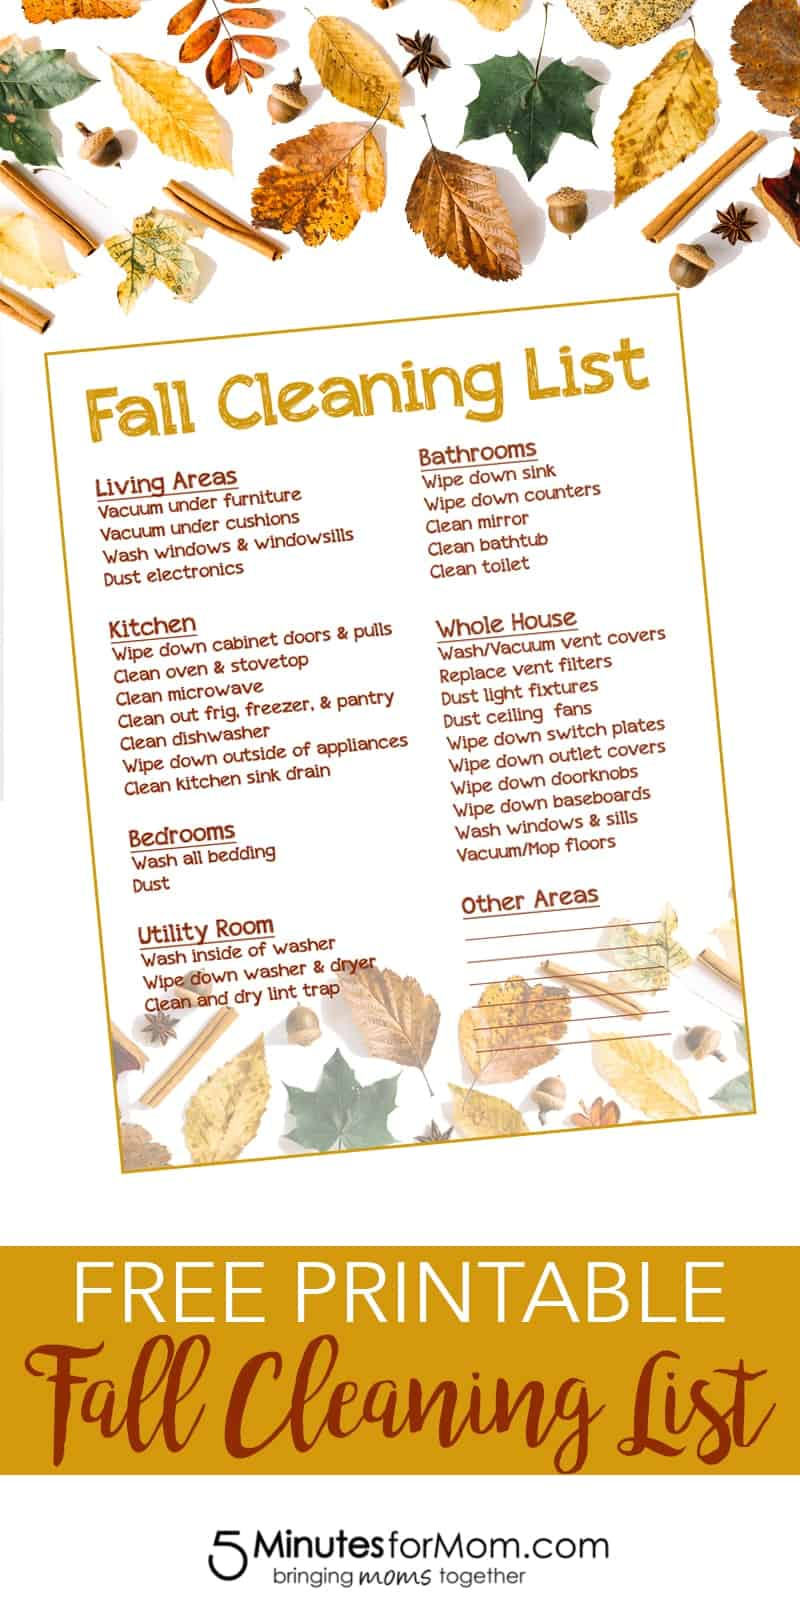 Free Fall Cleaning List Printable from 5 Minutes for Mom